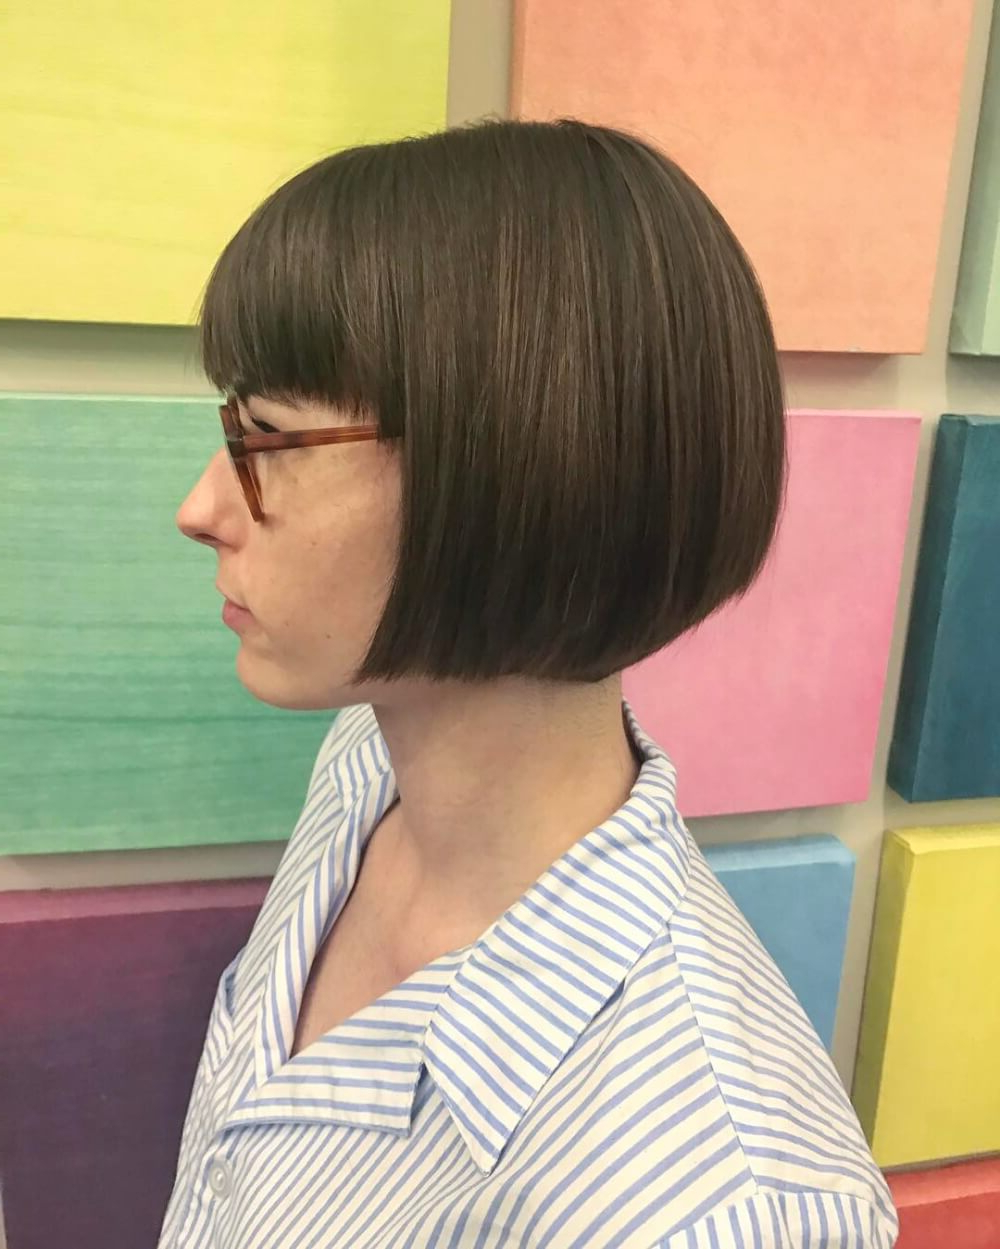 49 Chic Short Bob Hairstyles & Haircuts For Women In 2018 Within Short Bob Hairstyles With Tapered Back (View 7 of 20)